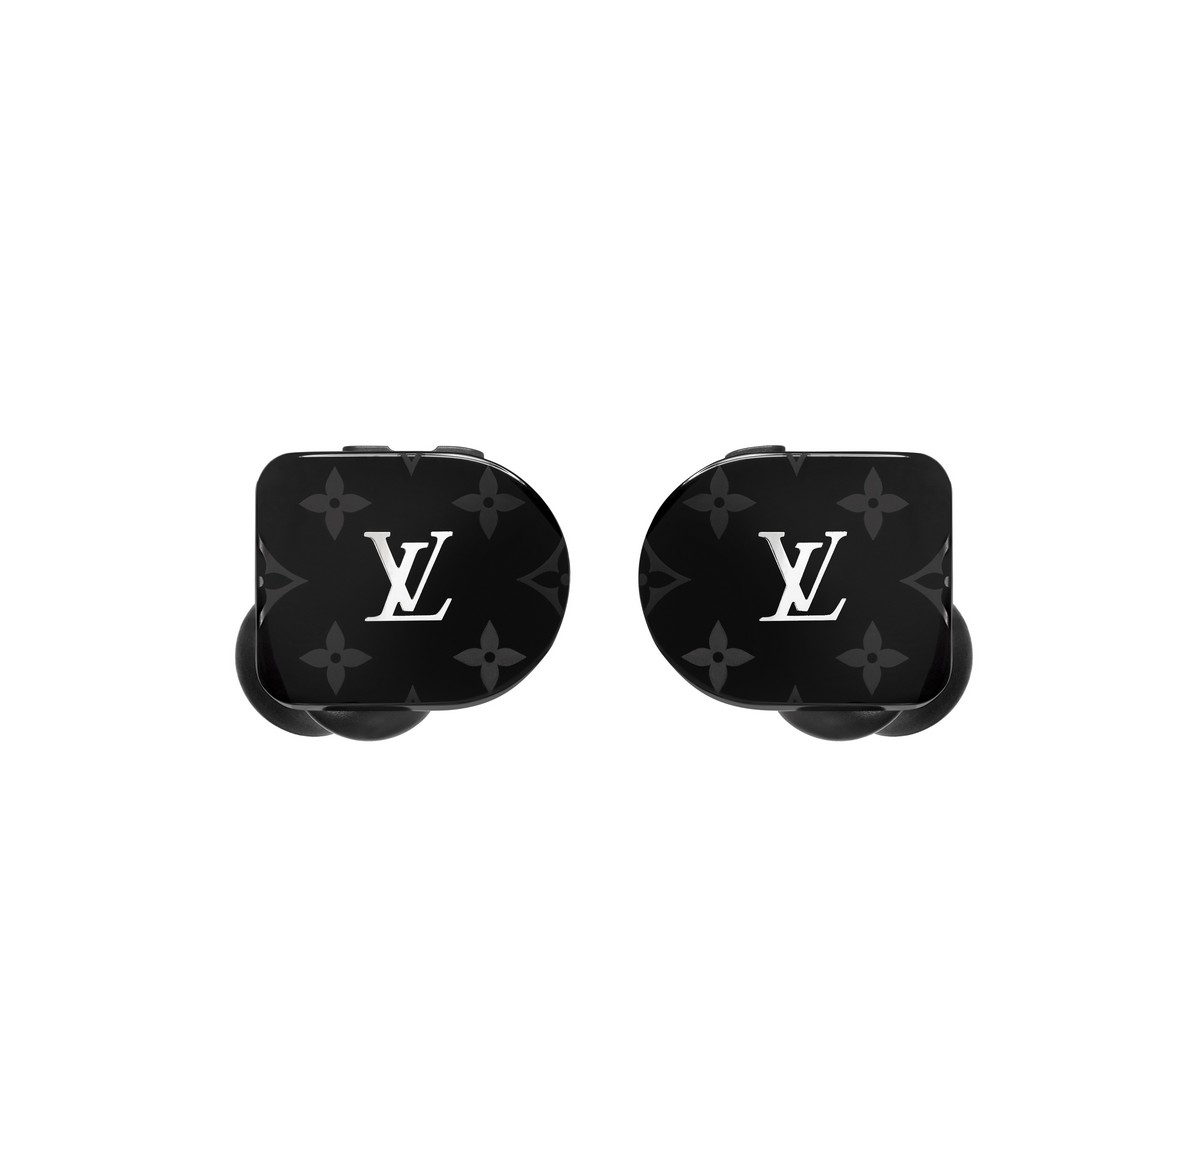 Louis Vuitton auricolari wireless